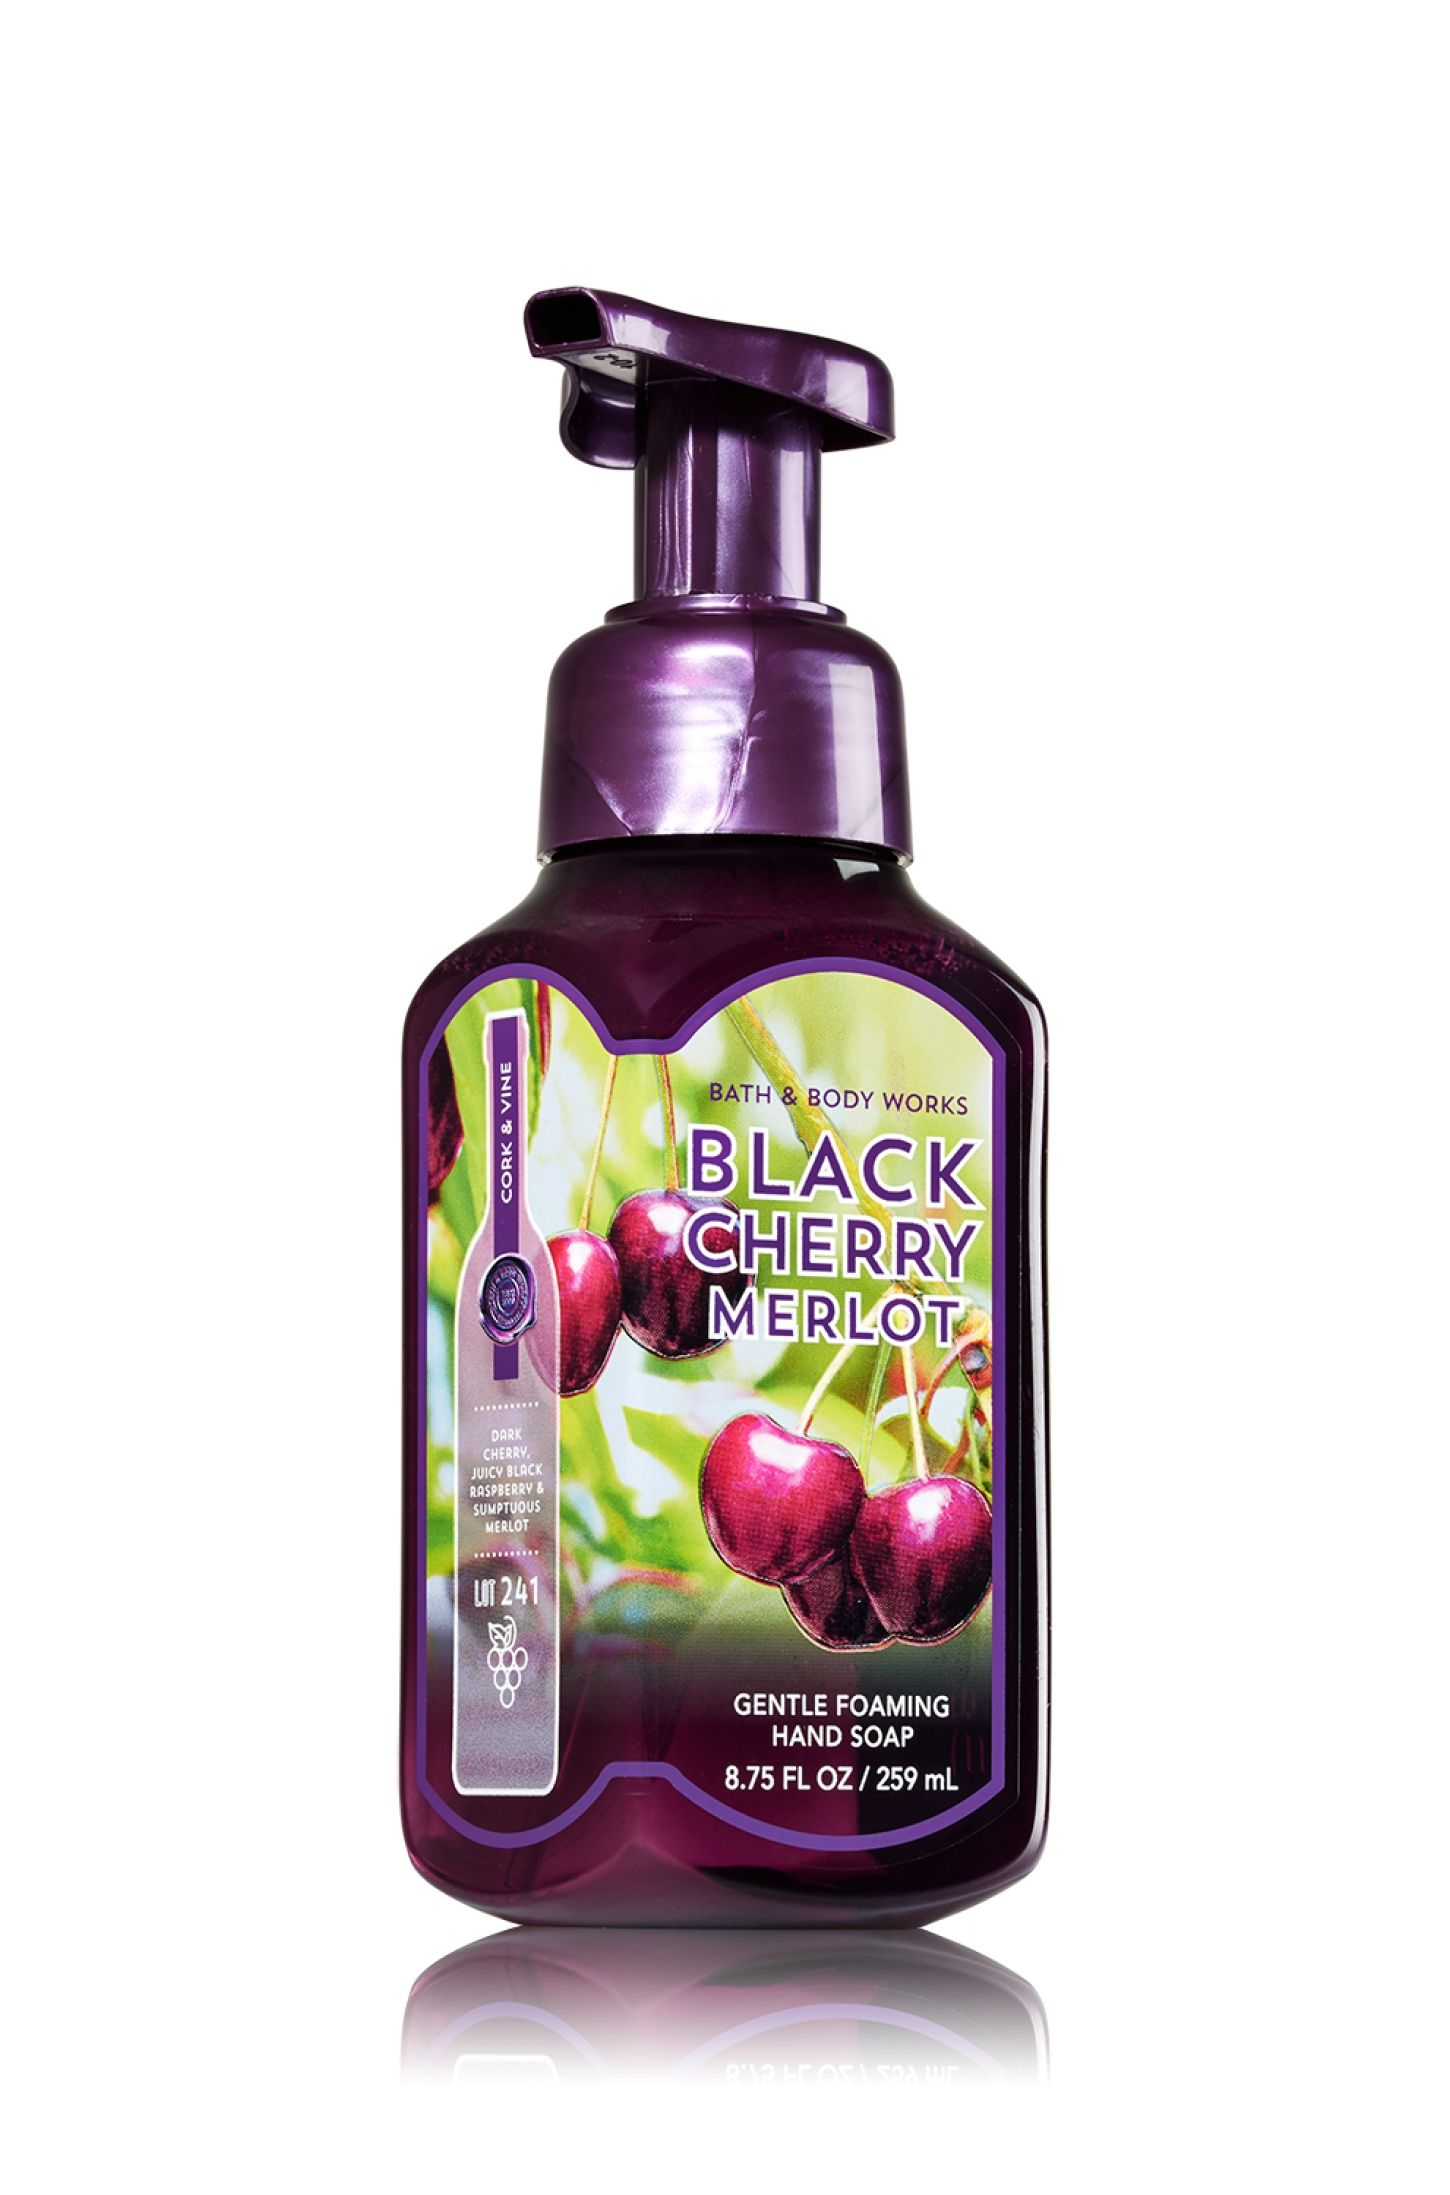 Black Cherry Merlot Gentle Foaming Hand Soap Soap Sanitizer